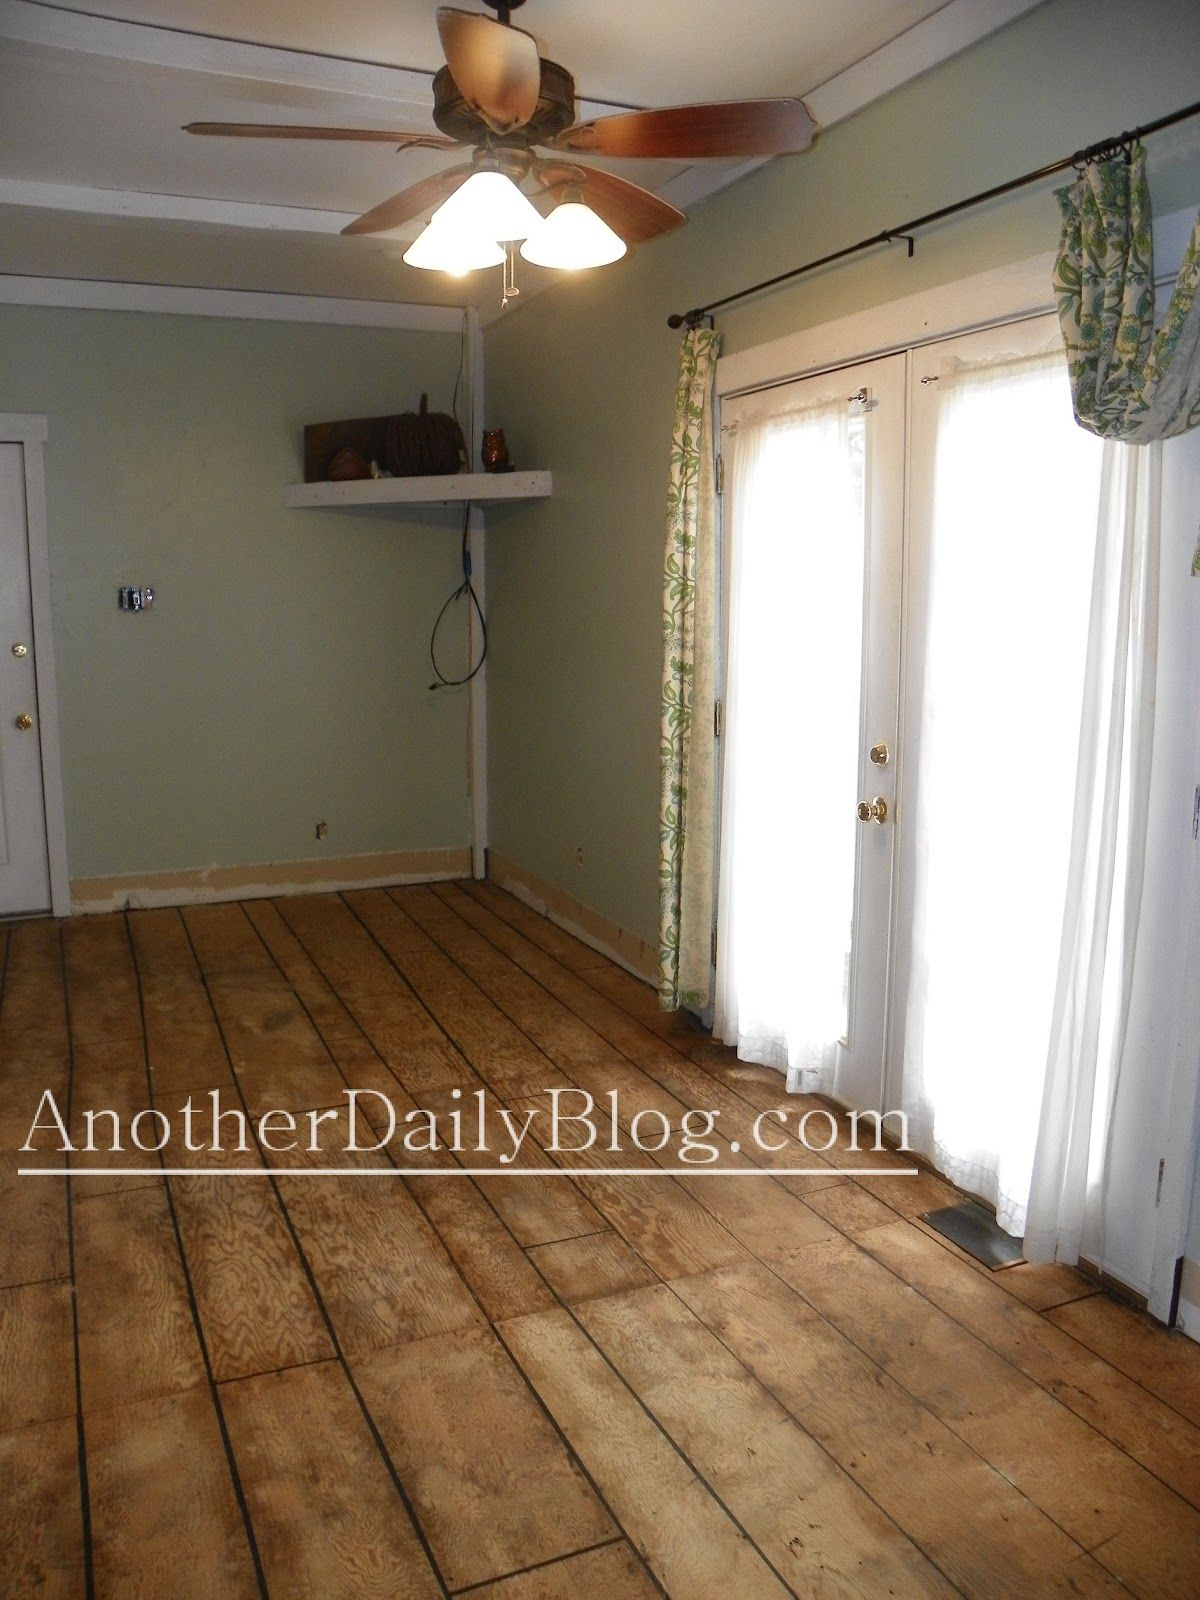 Plywood Plank Ceiling Another Daily Blog Diy How To Make Plywood Subfloor Look Like